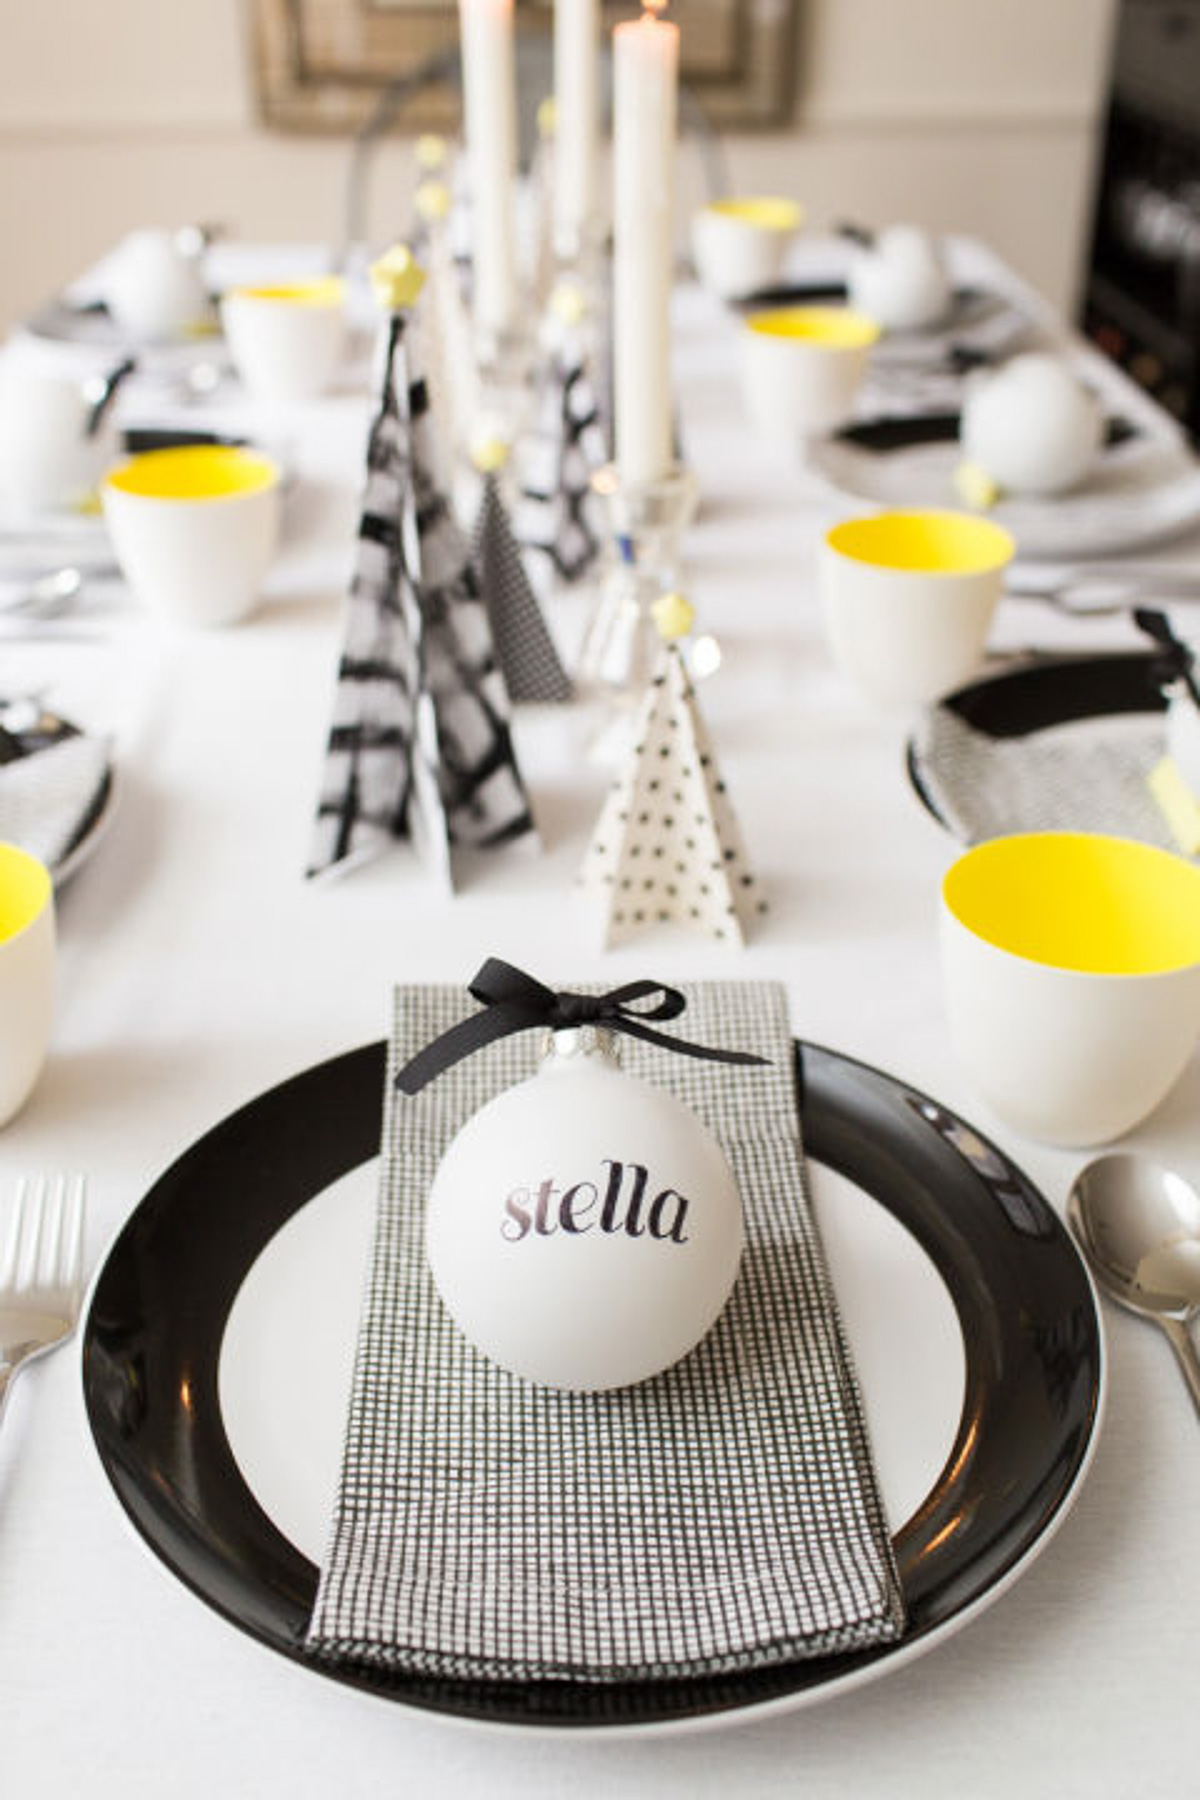 Holiday Table Setting Ideas_Creative Ways To Decorate The Table-15